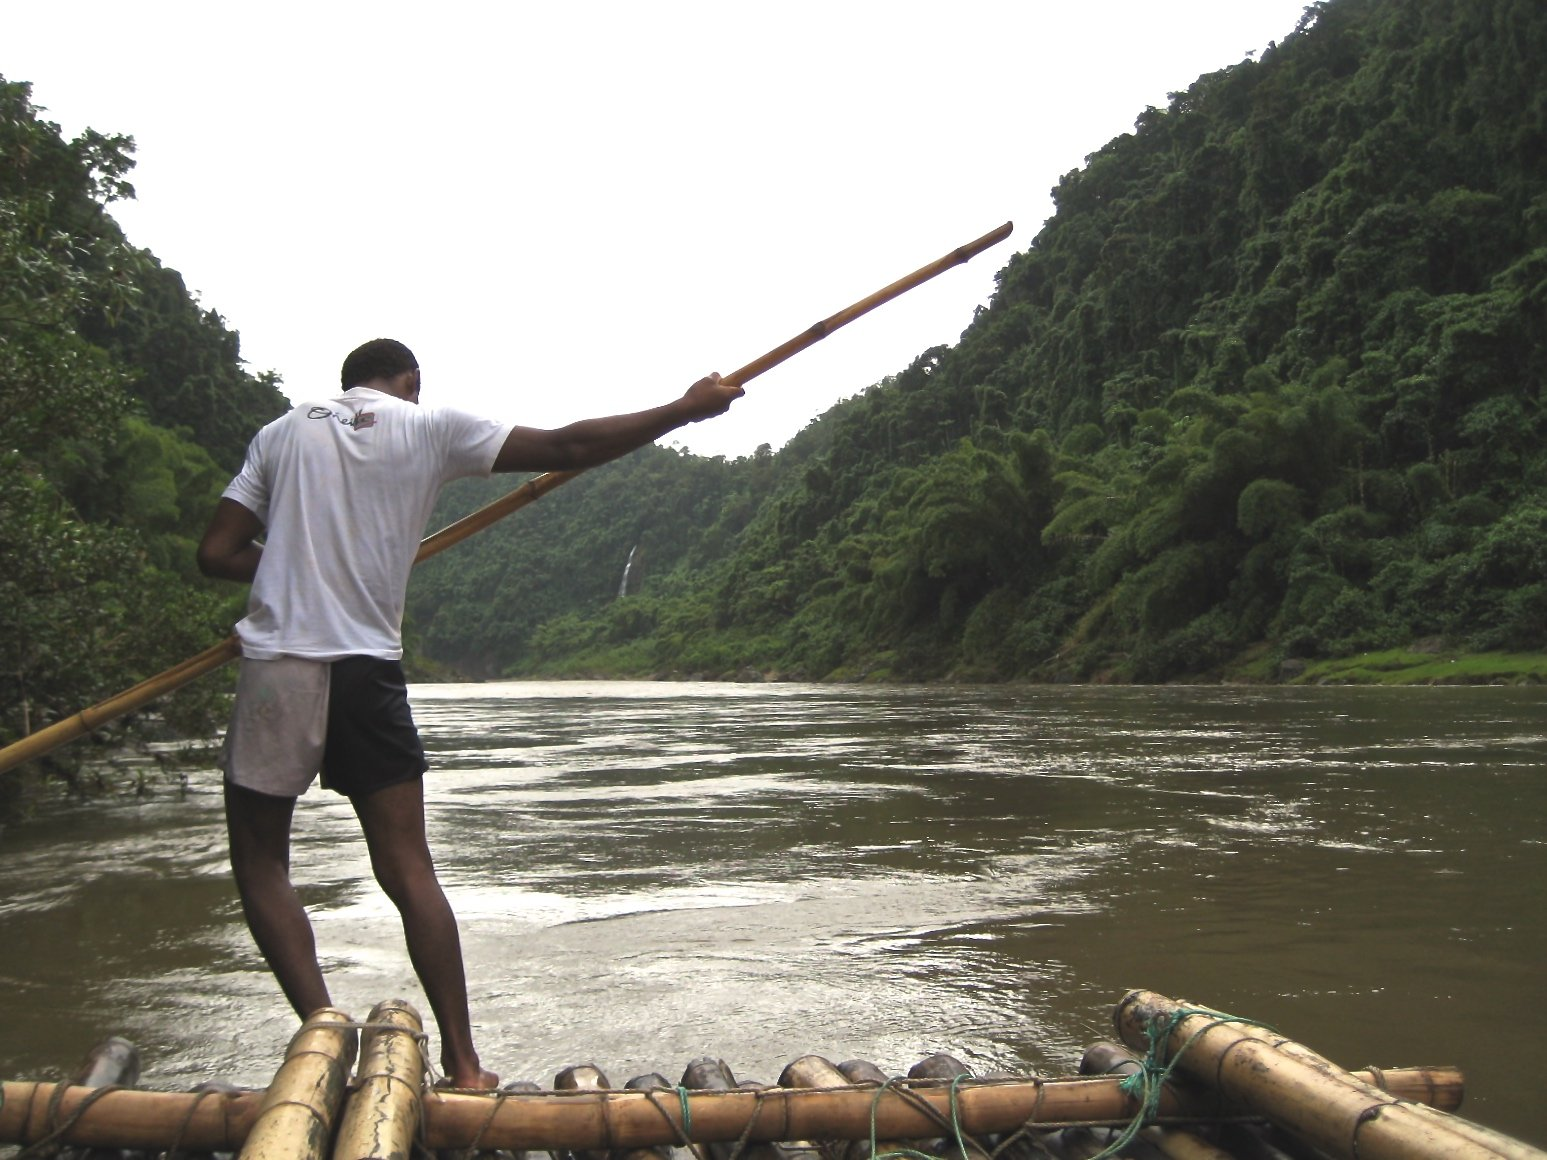 Man with Pole on Raft in River